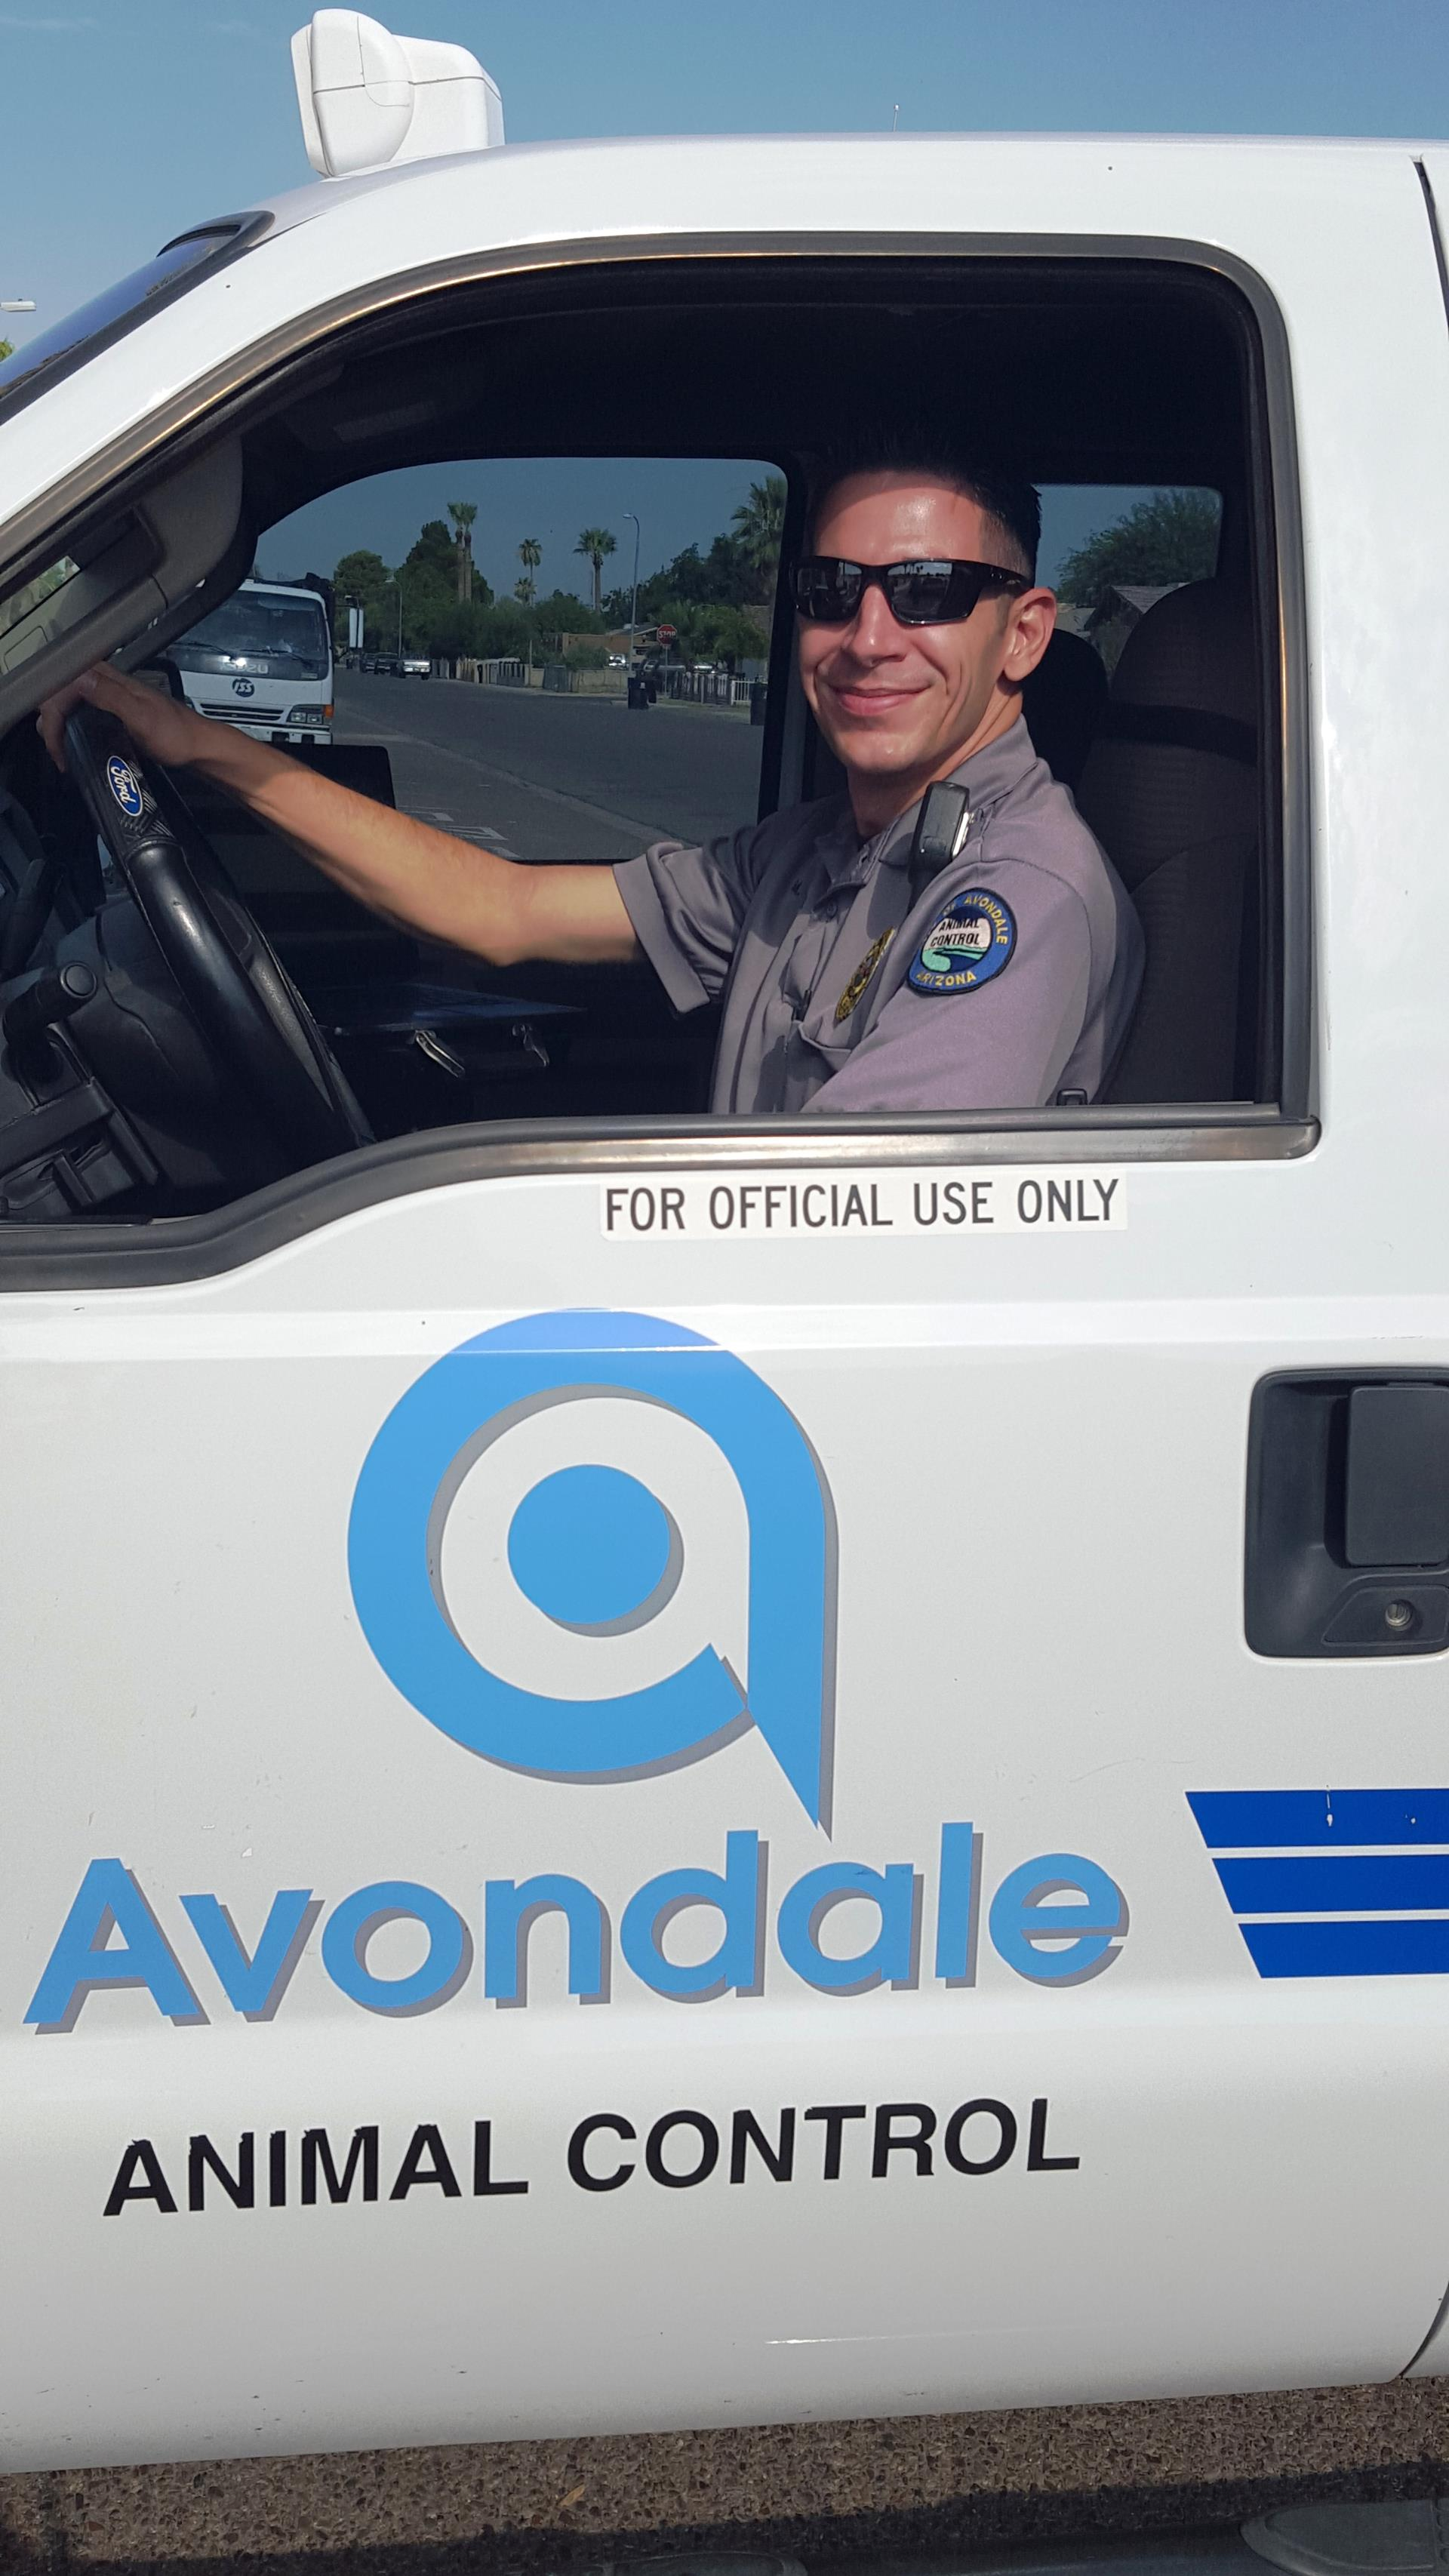 Animal Control Officer in vehicle